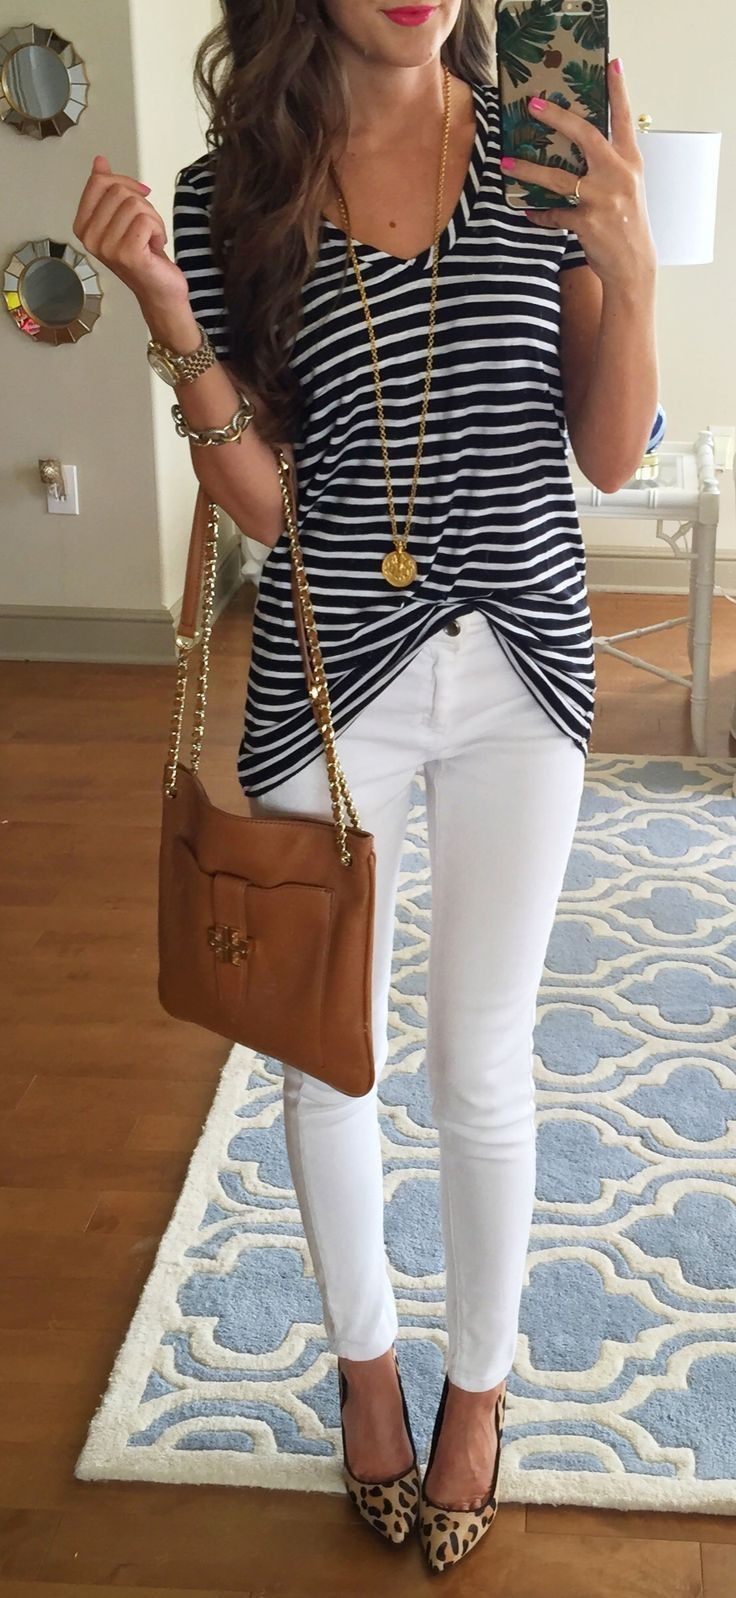 #spring #casual #outfits #inspiration |Striped tee + white denim